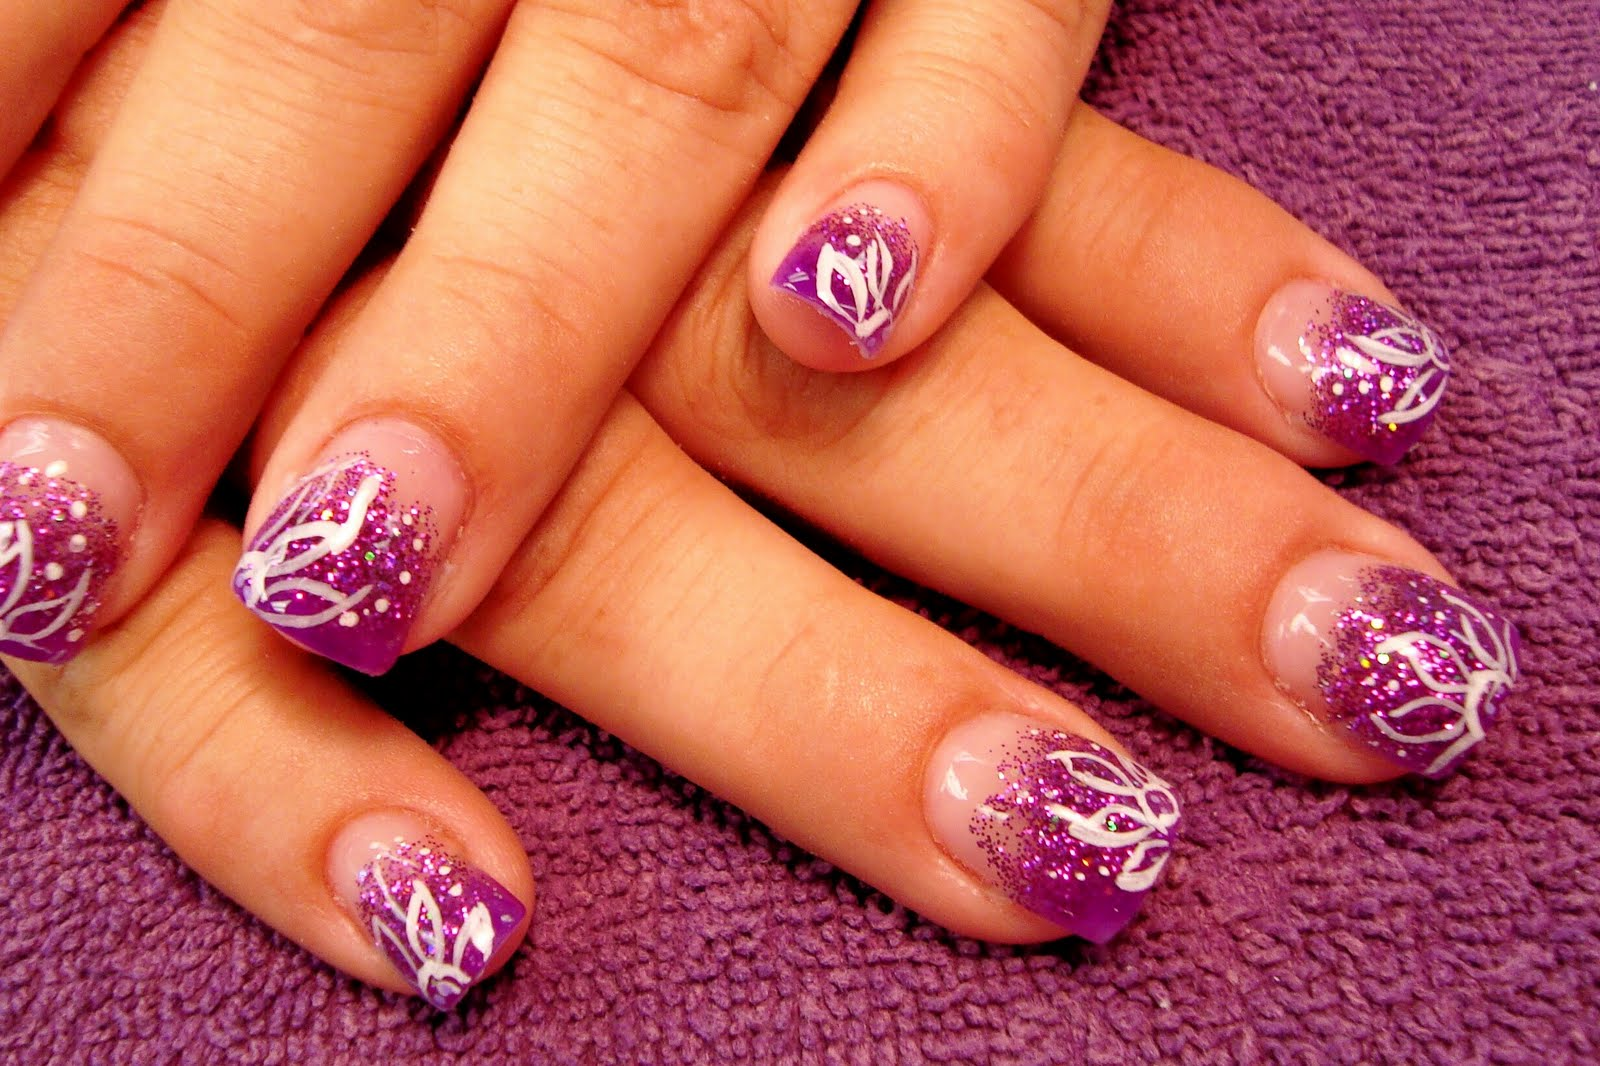 The Purple Pinkie Nail Salon: Bling Week Continued